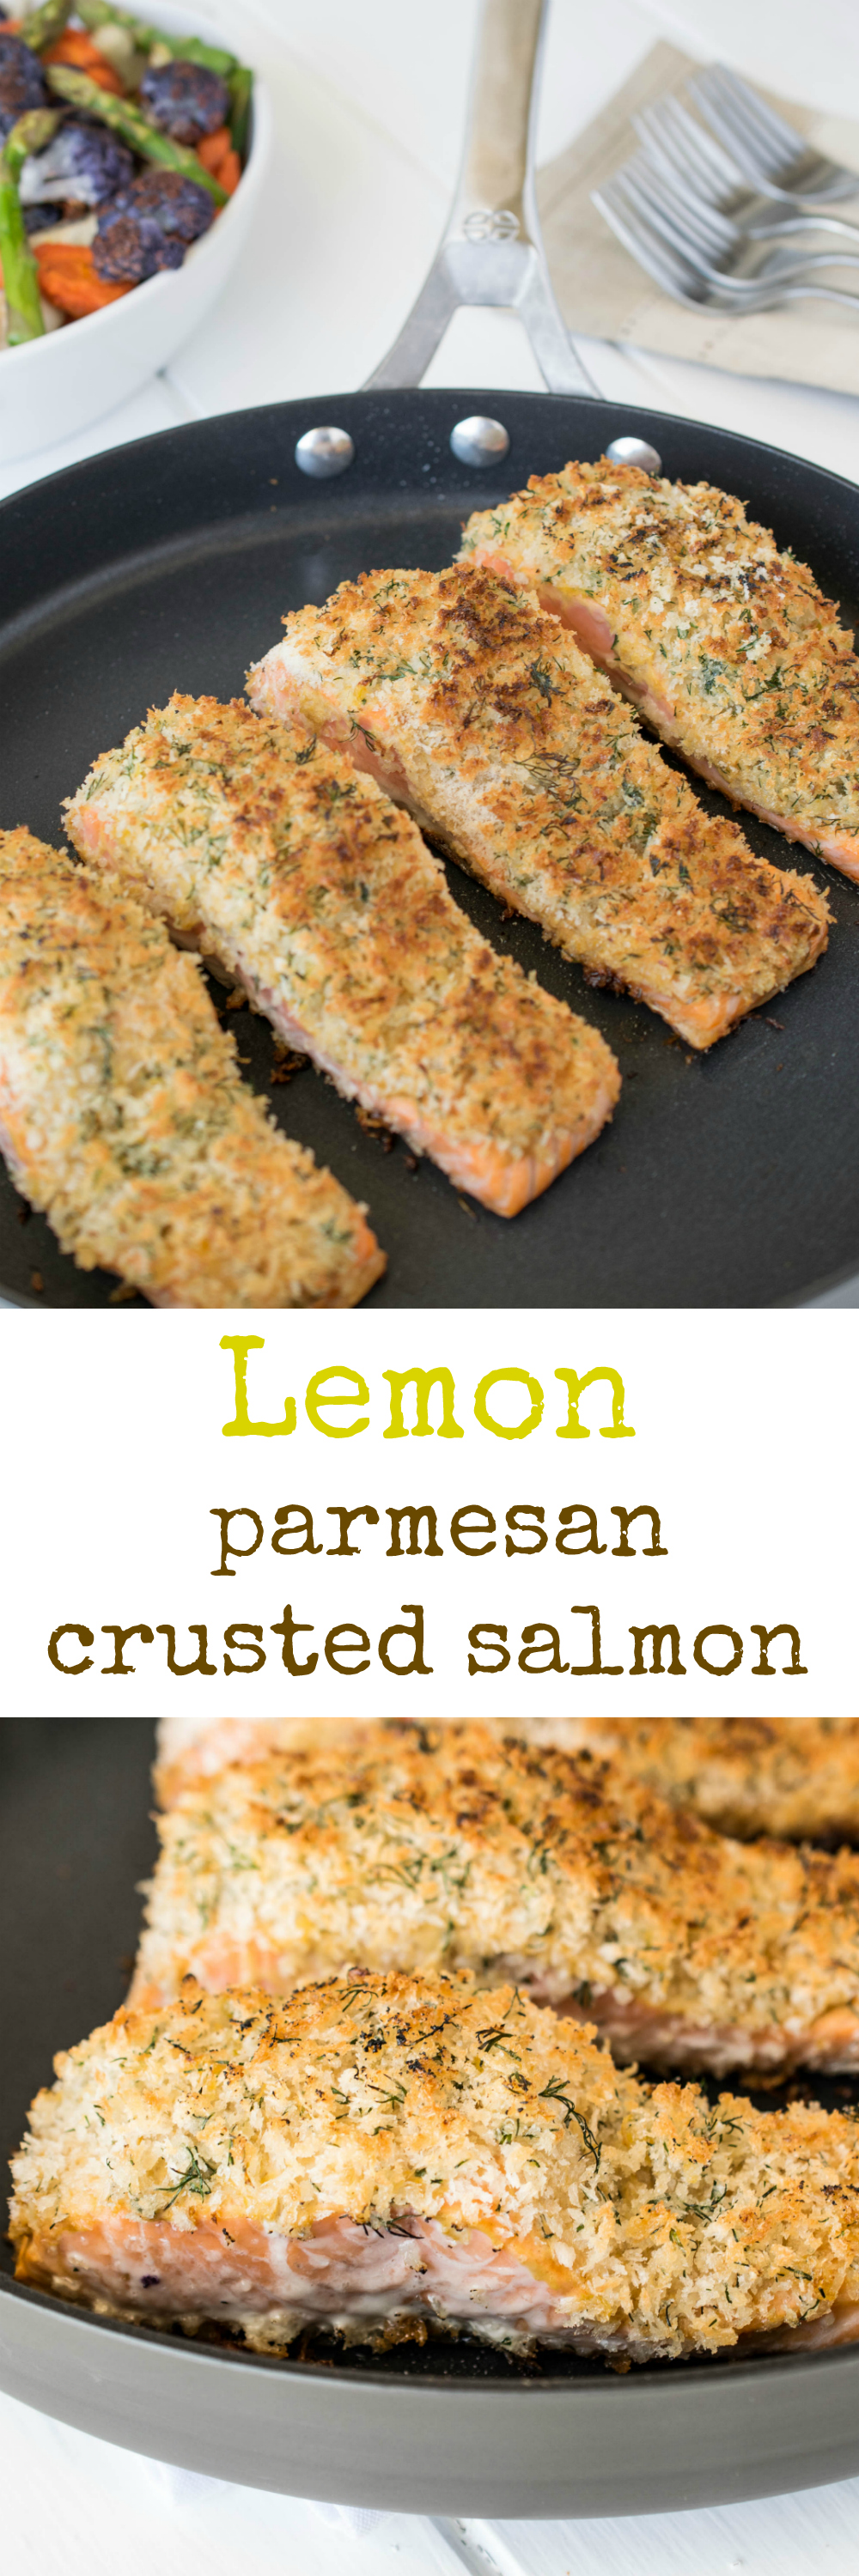 Lemon parmesan crusted salmon culinary ginger for Parmesan crusted fish